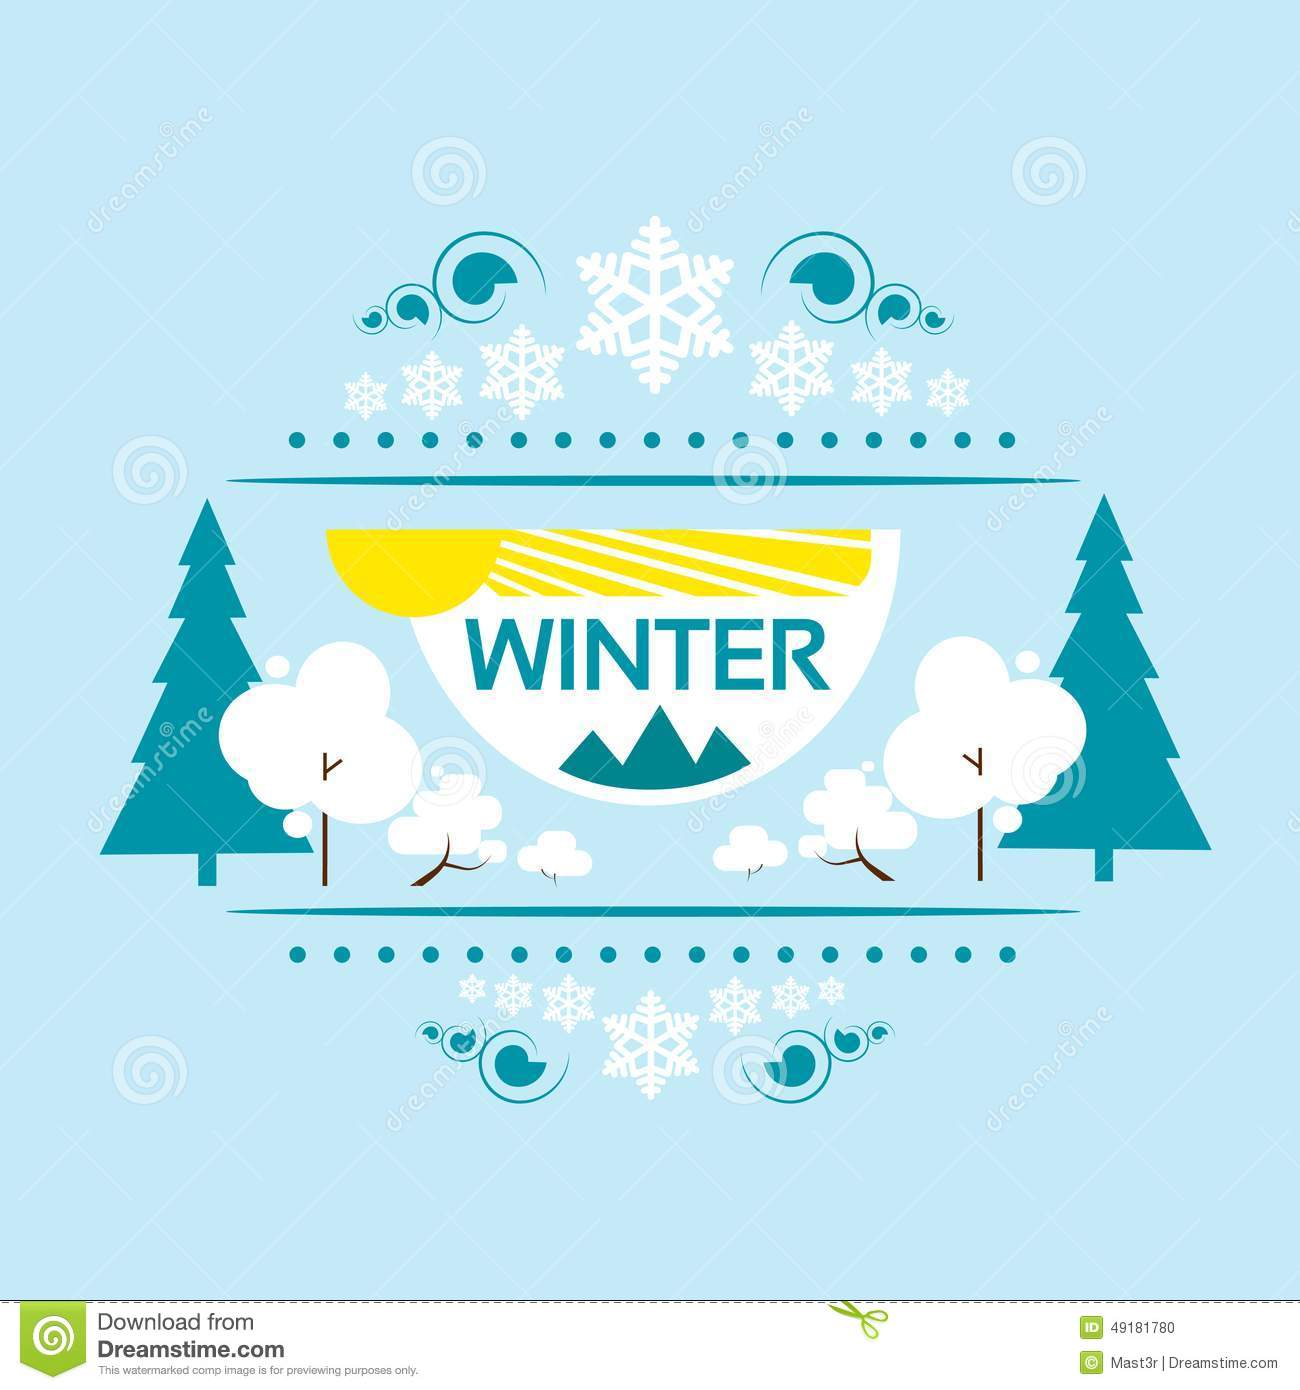 Snowflake free vector download 1681 Free vector for